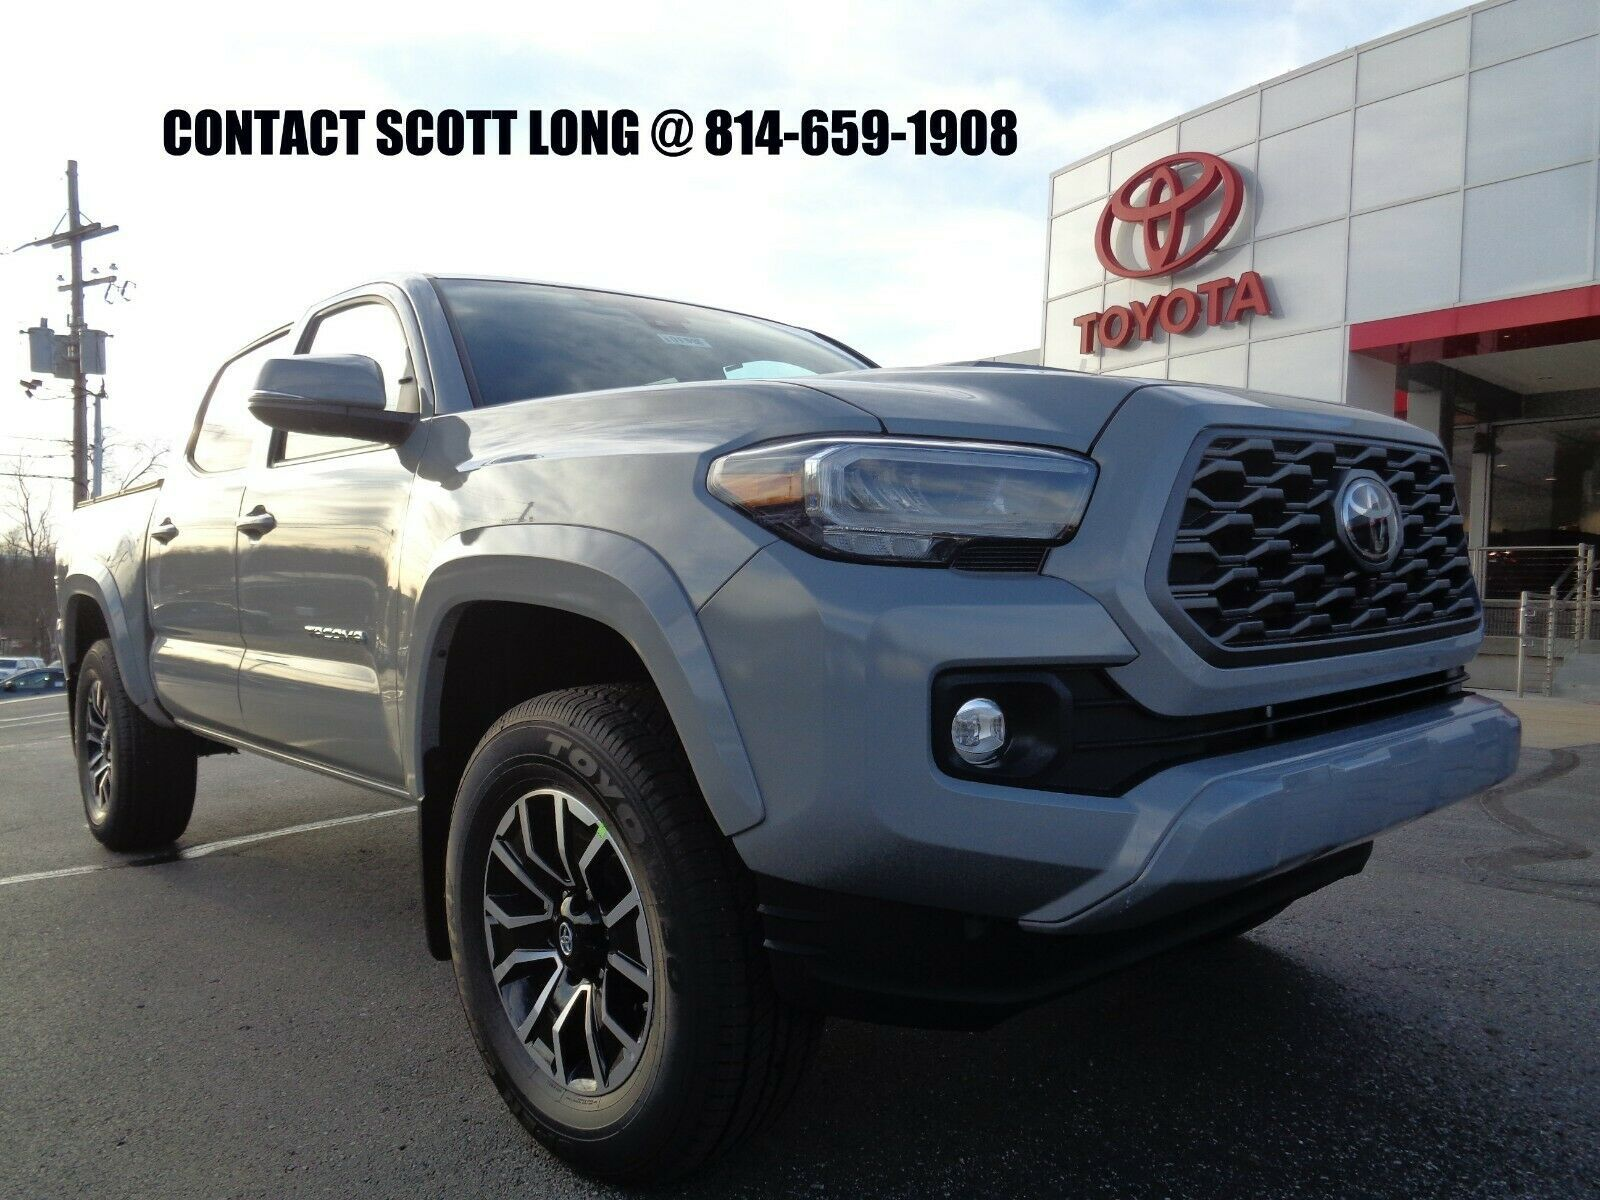 Used 2020 Toyota Tacoma New 2020 Toyota Tacoma Trd Sport V6 New 4 Door New 2020 Toyota Tacoma Trd Sport Double Cab 4x4 3 5l Premium Leather Sunroof 4wd 2020 M In